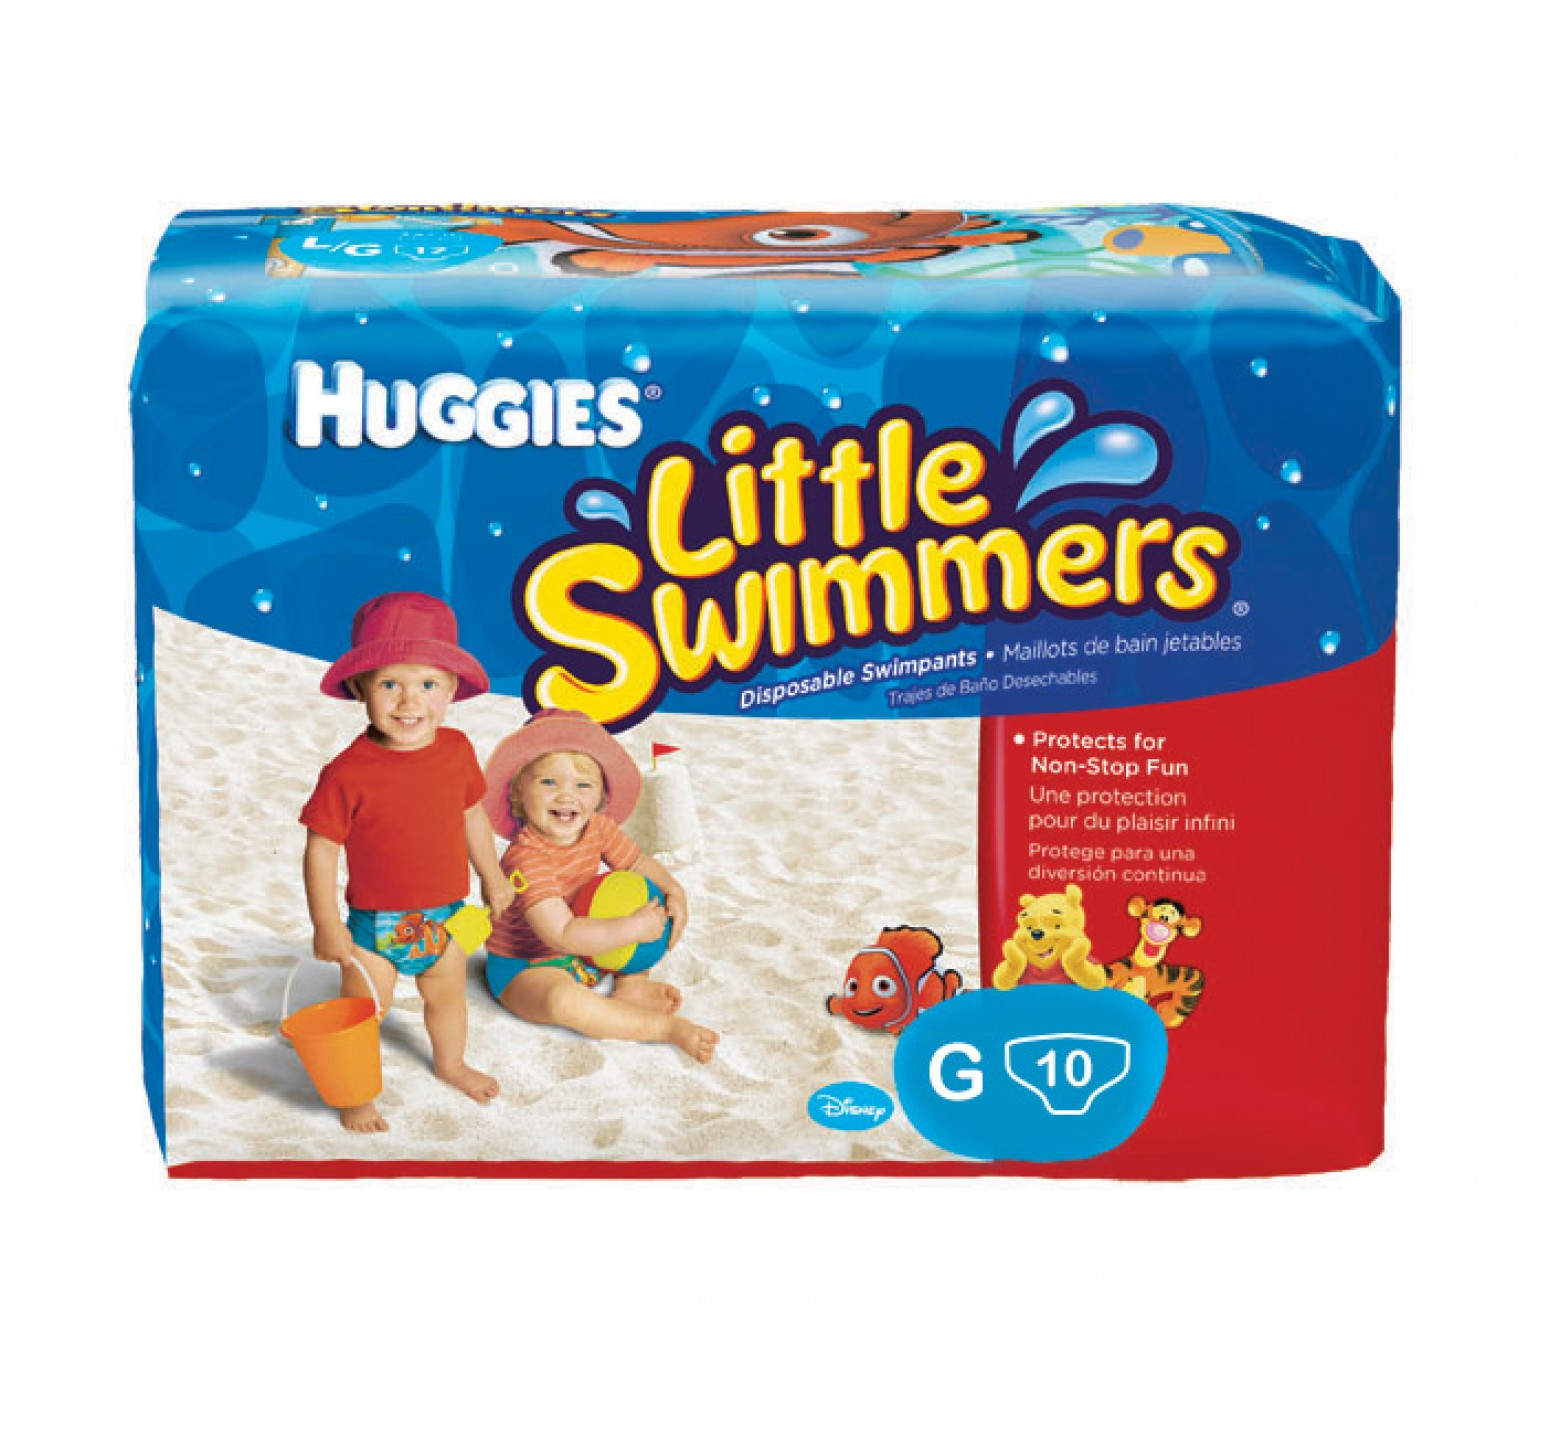 Huggies Little Swimmers [G] 10 unidades